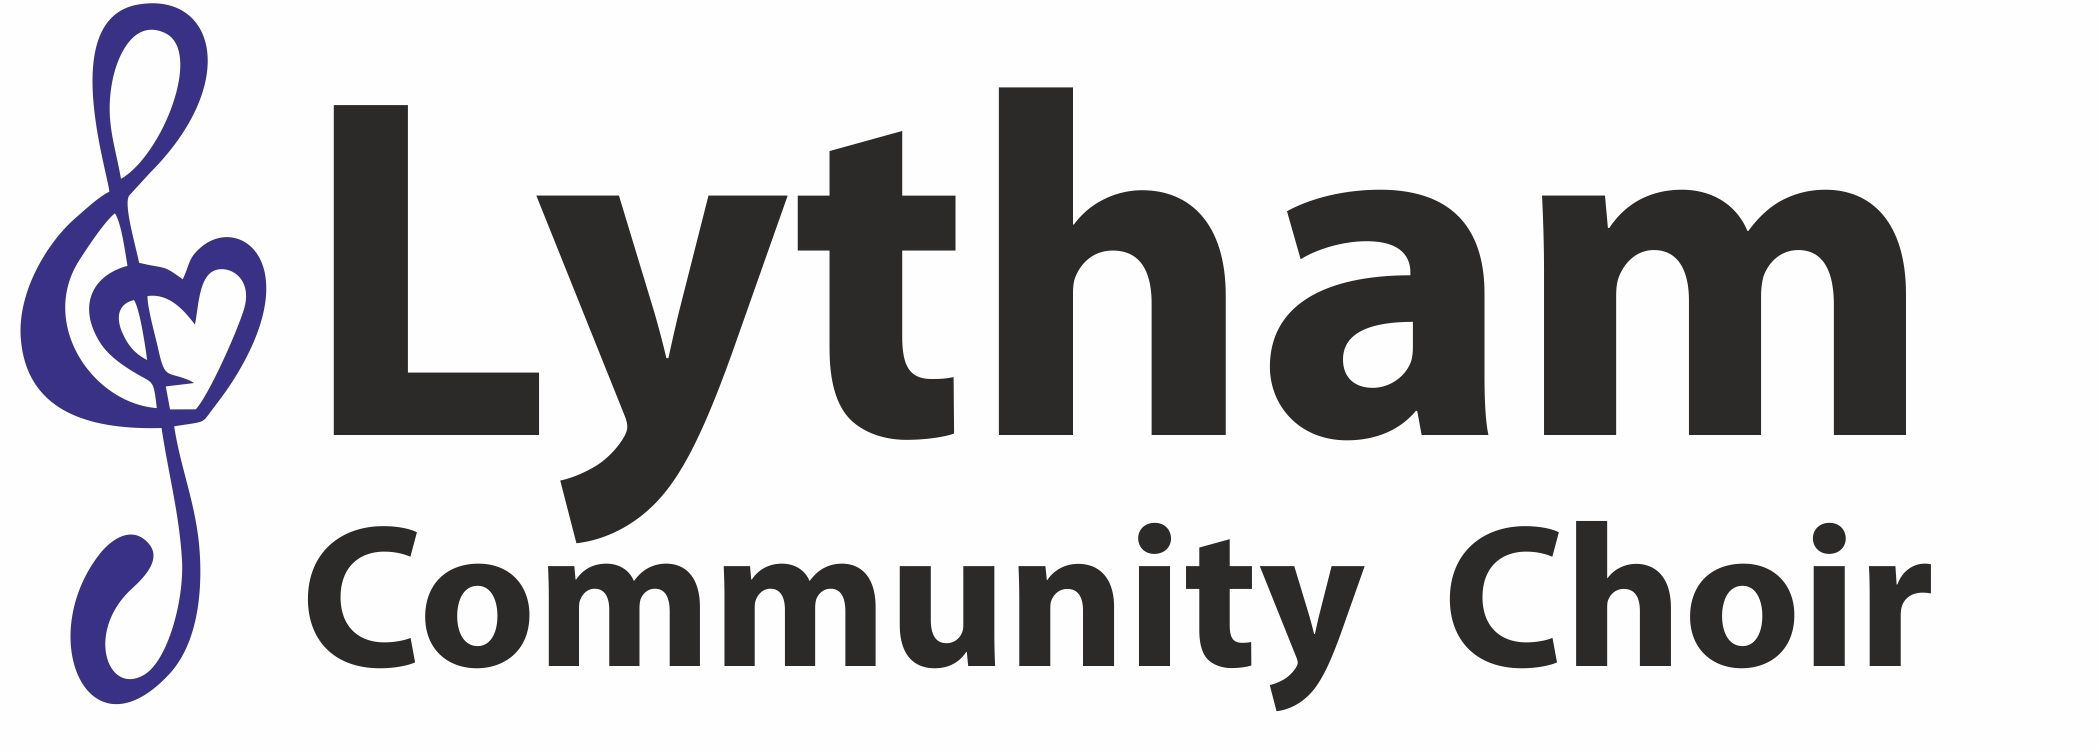 Lytham Community Choir